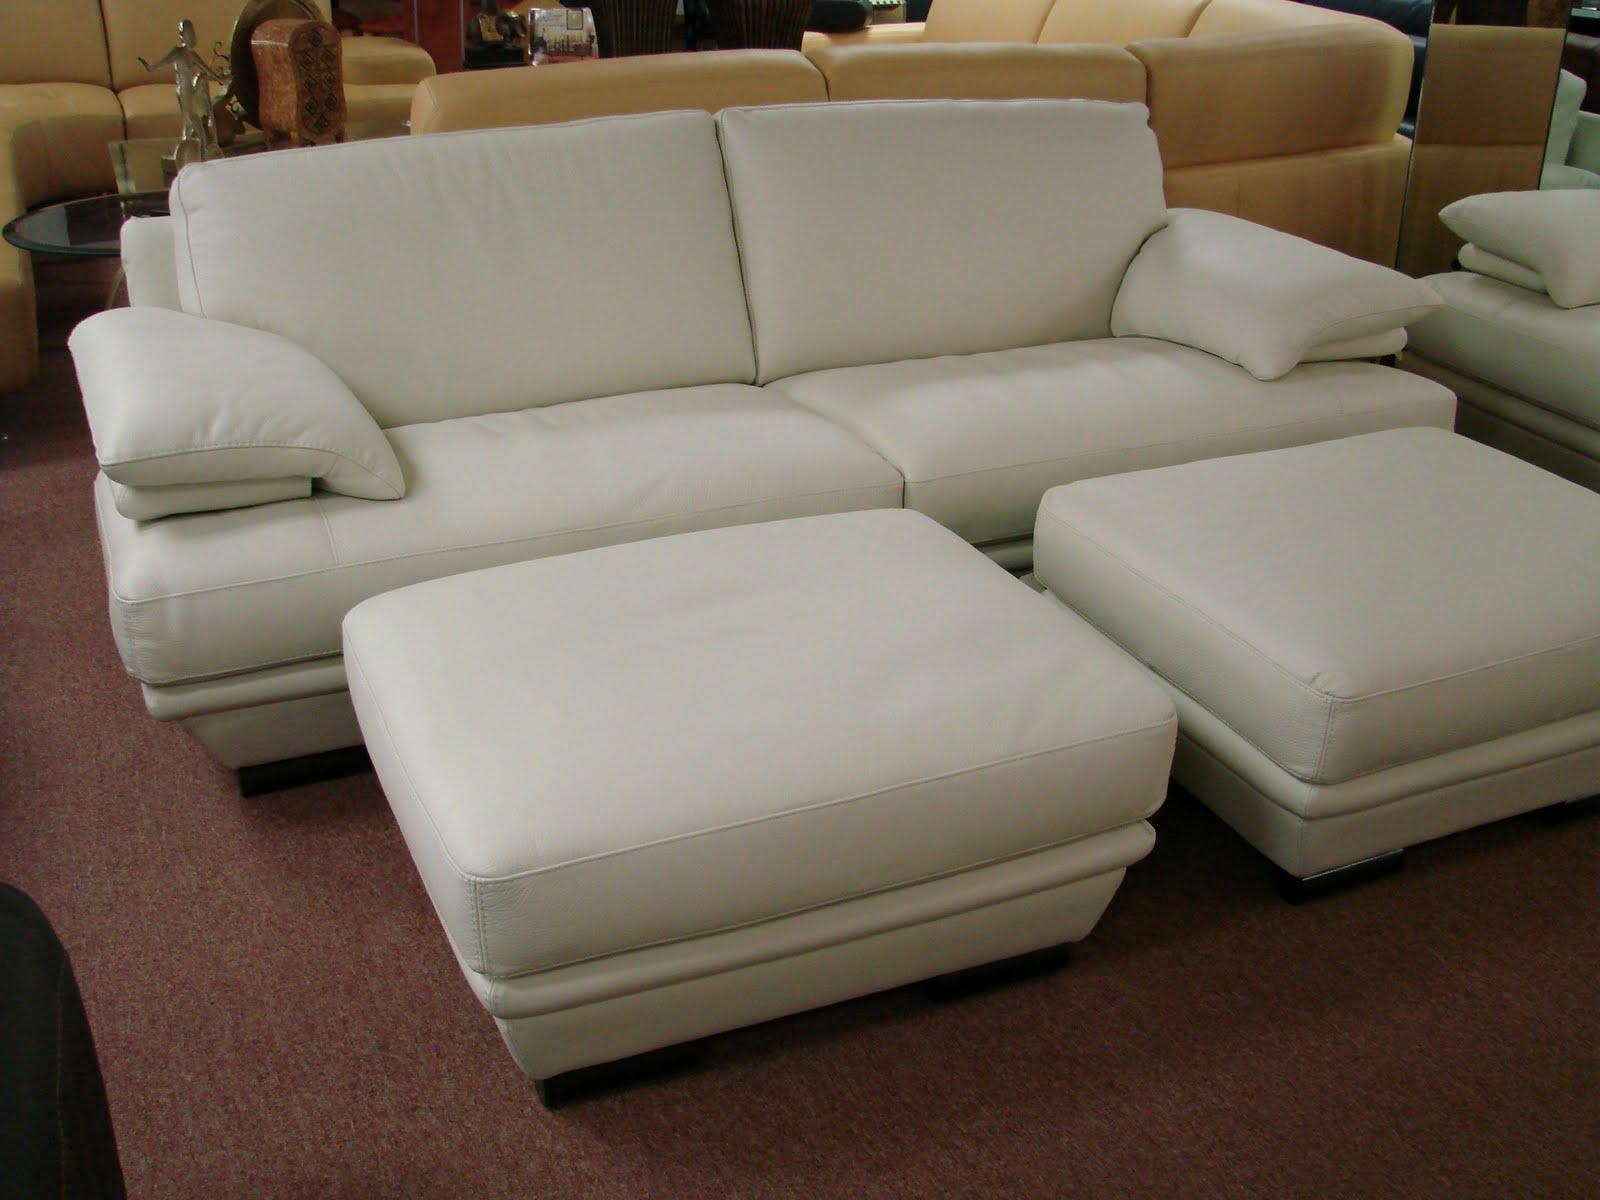 New Sofa White Leather 14 For Your Sofas And Couches Ideas With Inside White Leather Sofas (Image 8 of 20)